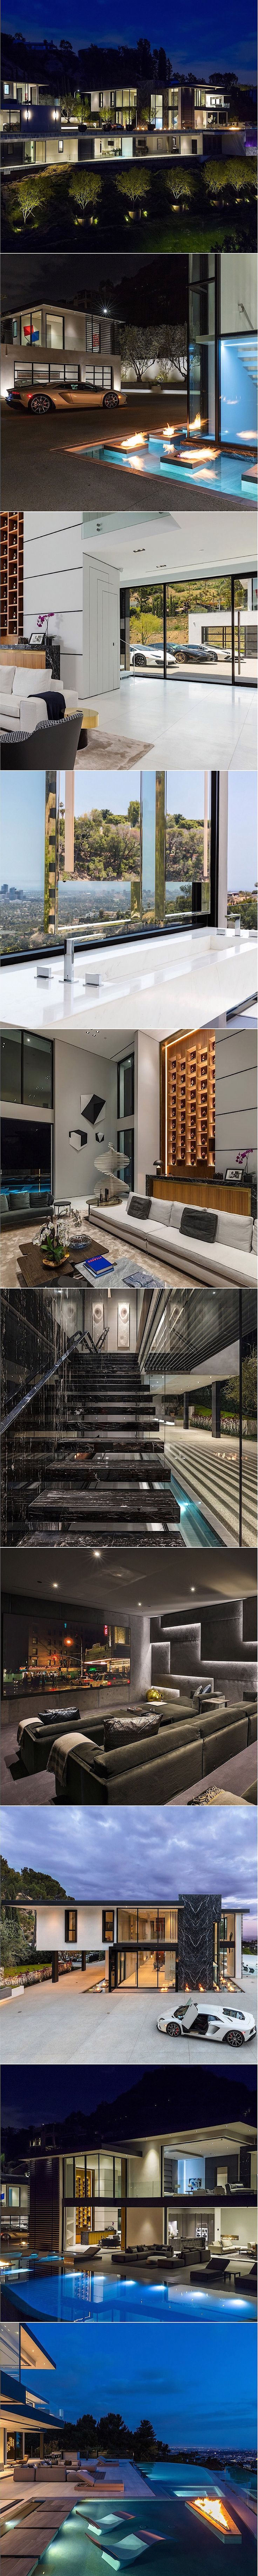 1677 N Doheny Dr, perched on a promontory above #Hollywood's famed Bird Streets in the prestigious Sunset Strip enclave known as the Doheny Estates, sits this exquisitely designed #architectural, custom #home. A model of sophistication, it showcases unprecedented #European craftsmanship and #bespoke details which elevate the #property to a true work of #art.